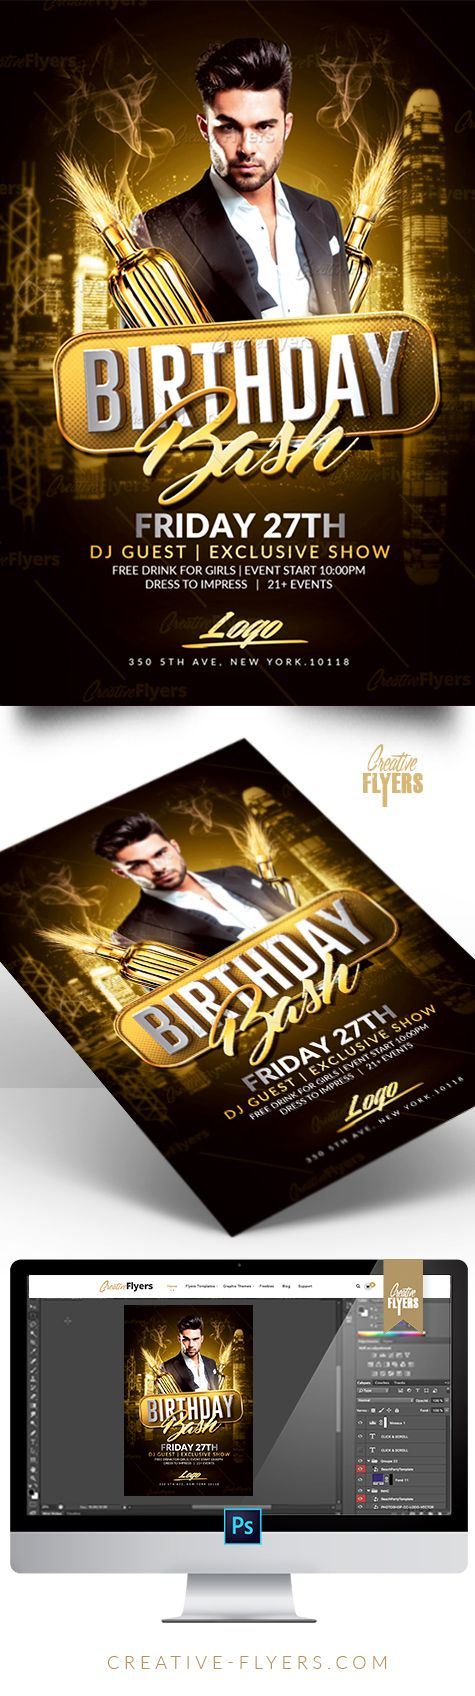 Birthday Flyer Psd Templates Photoshop | DJ Posters | Pinterest ...